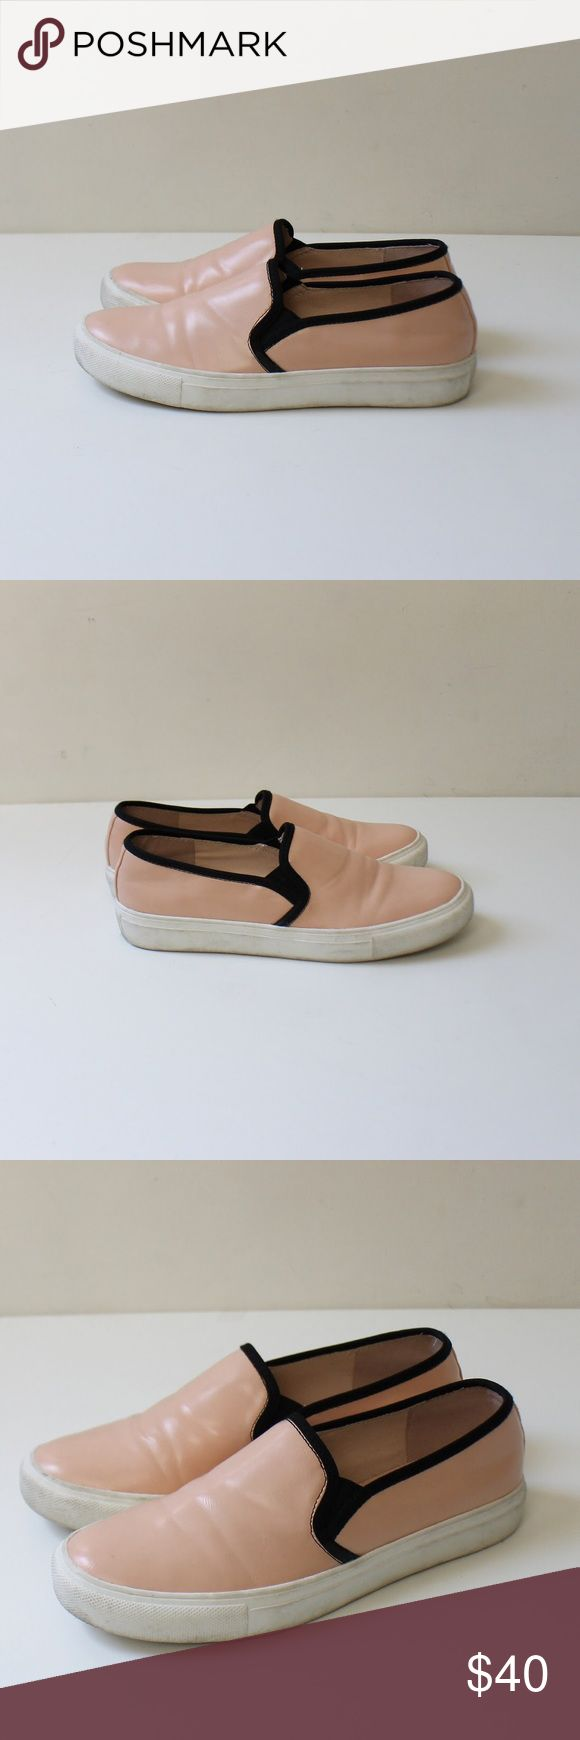 Kurt Geiger Carvella Pink Leather Slip On Shoes Kurt Geiger Carvella light pink leather and black trim slip-ons with rubber sole. Excellent condition. Worn only 2 times. Size 40 kurt geiger Shoes Sneakers